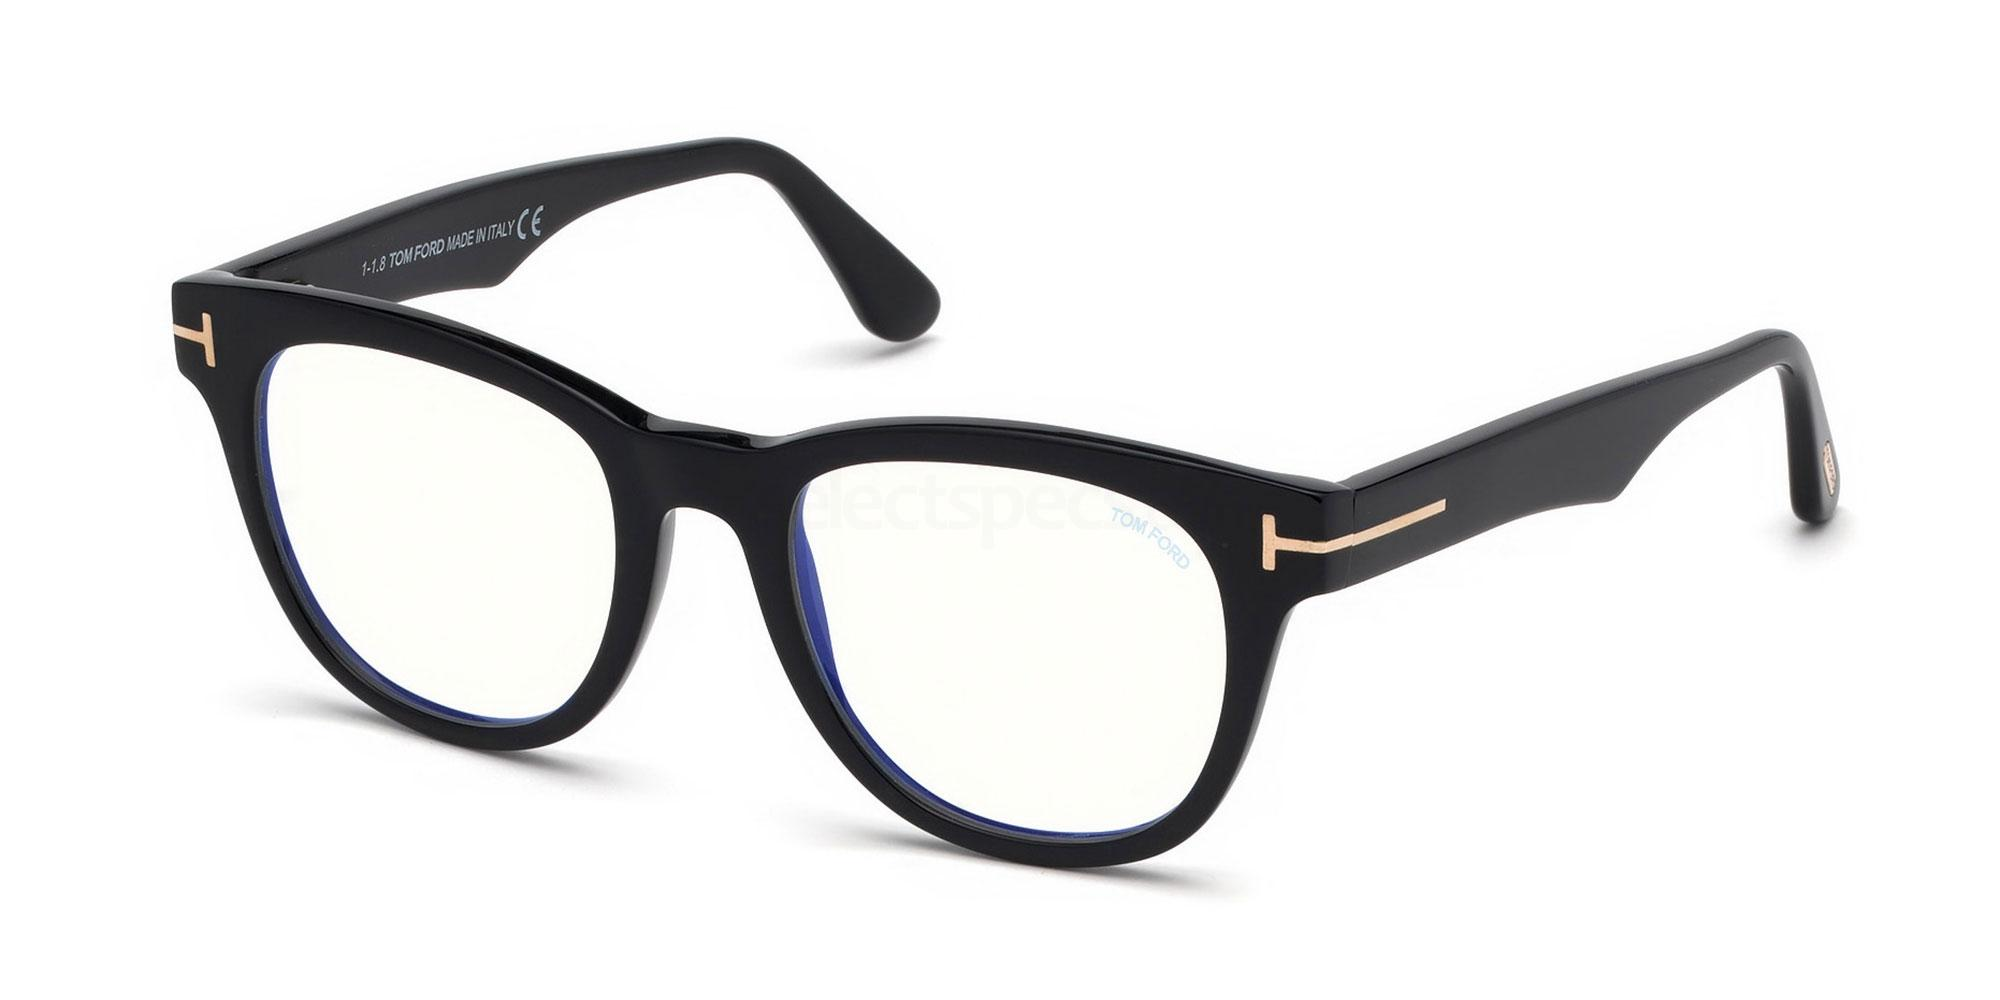 001 FT5560-B Glasses, Tom Ford